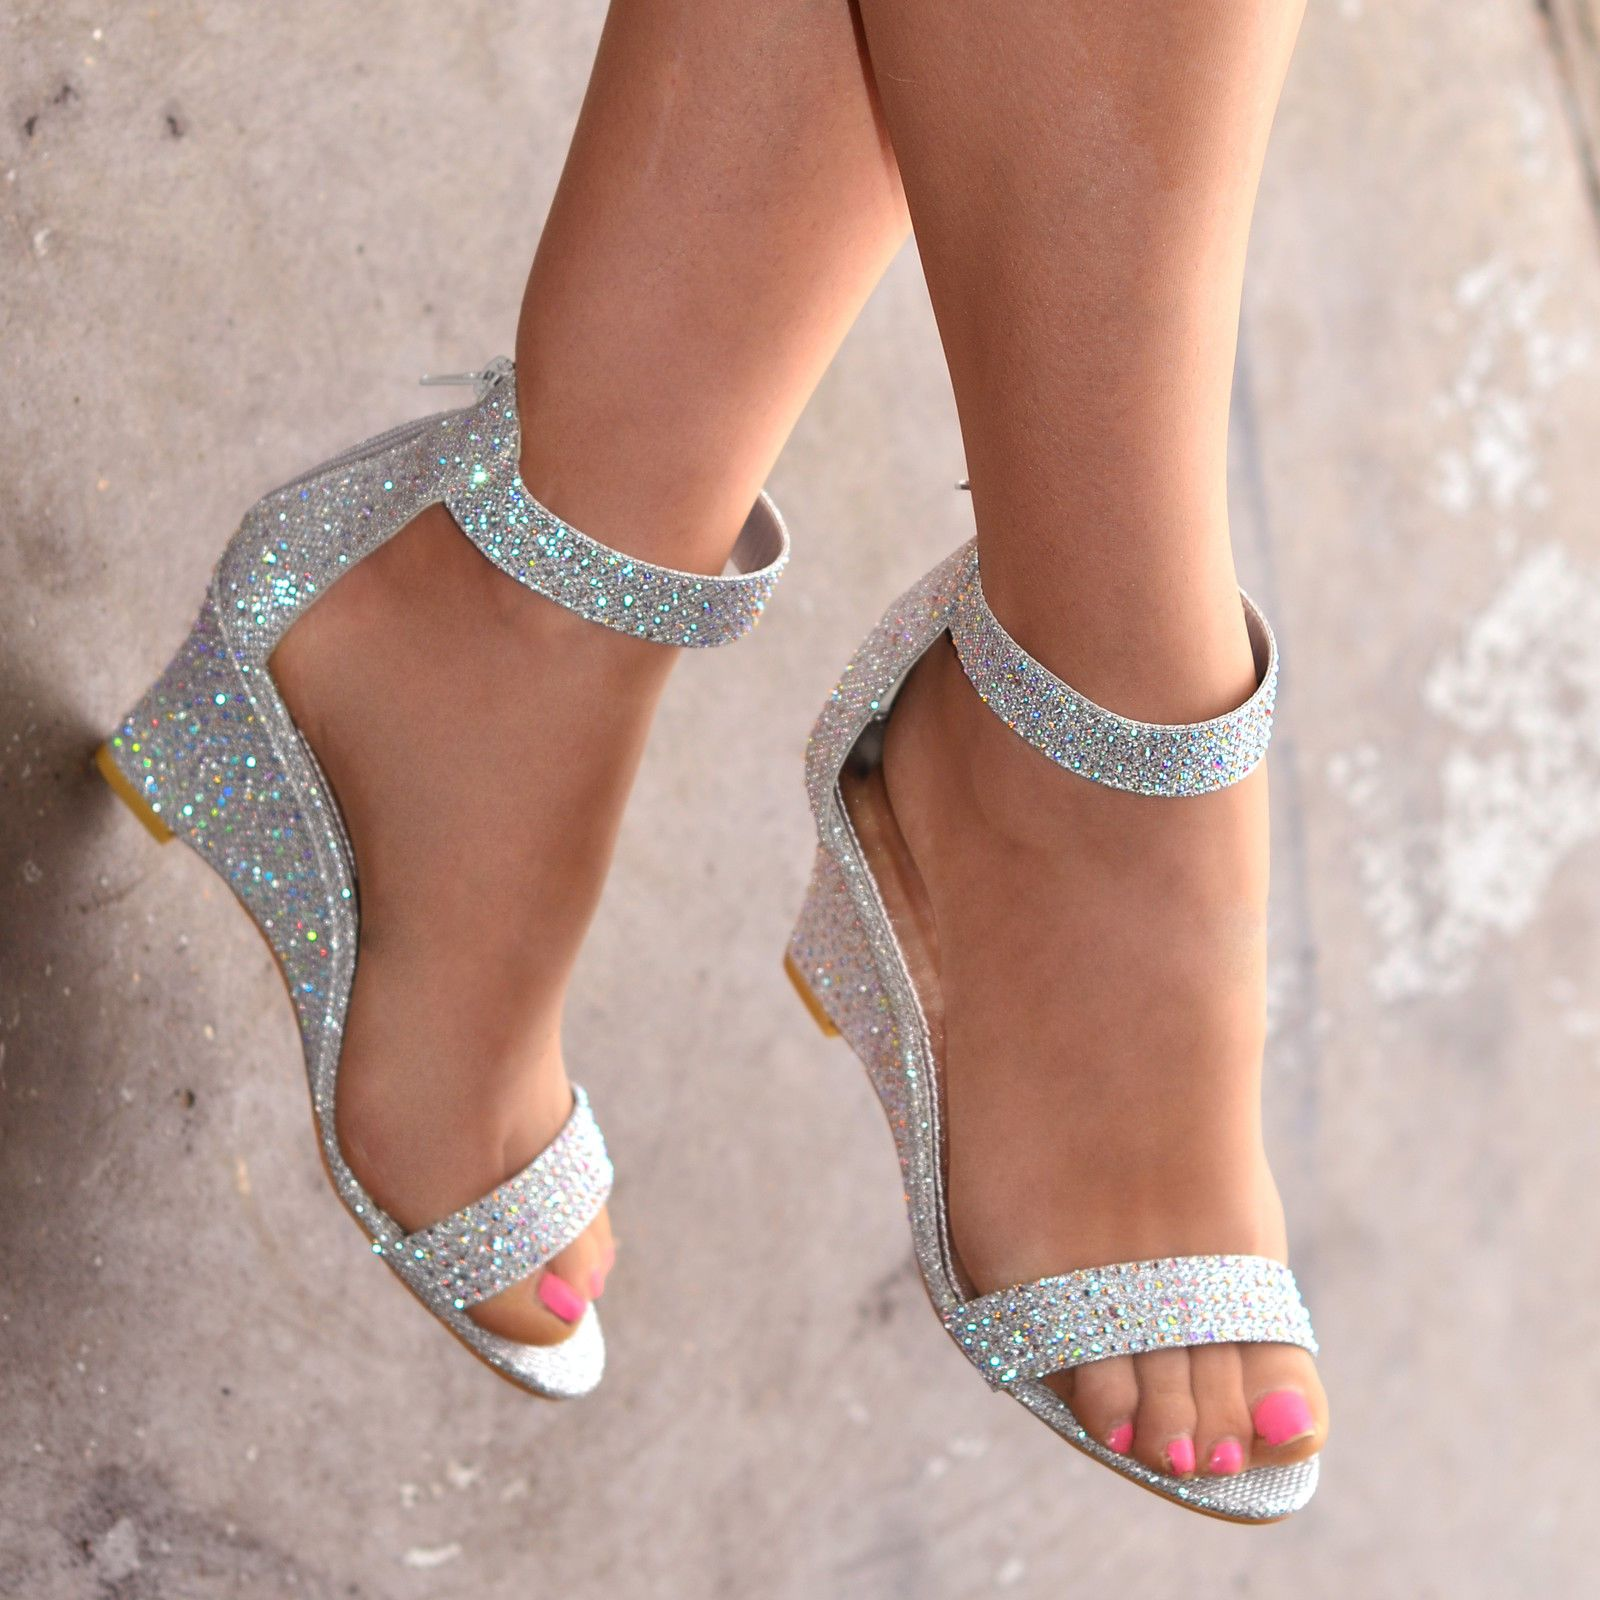 f68a9f74cfa444 NEW Ladies Sparkly Ankle Strap Wedges Mid Heel Evening Diamante Shoes  H20261 in Clothes